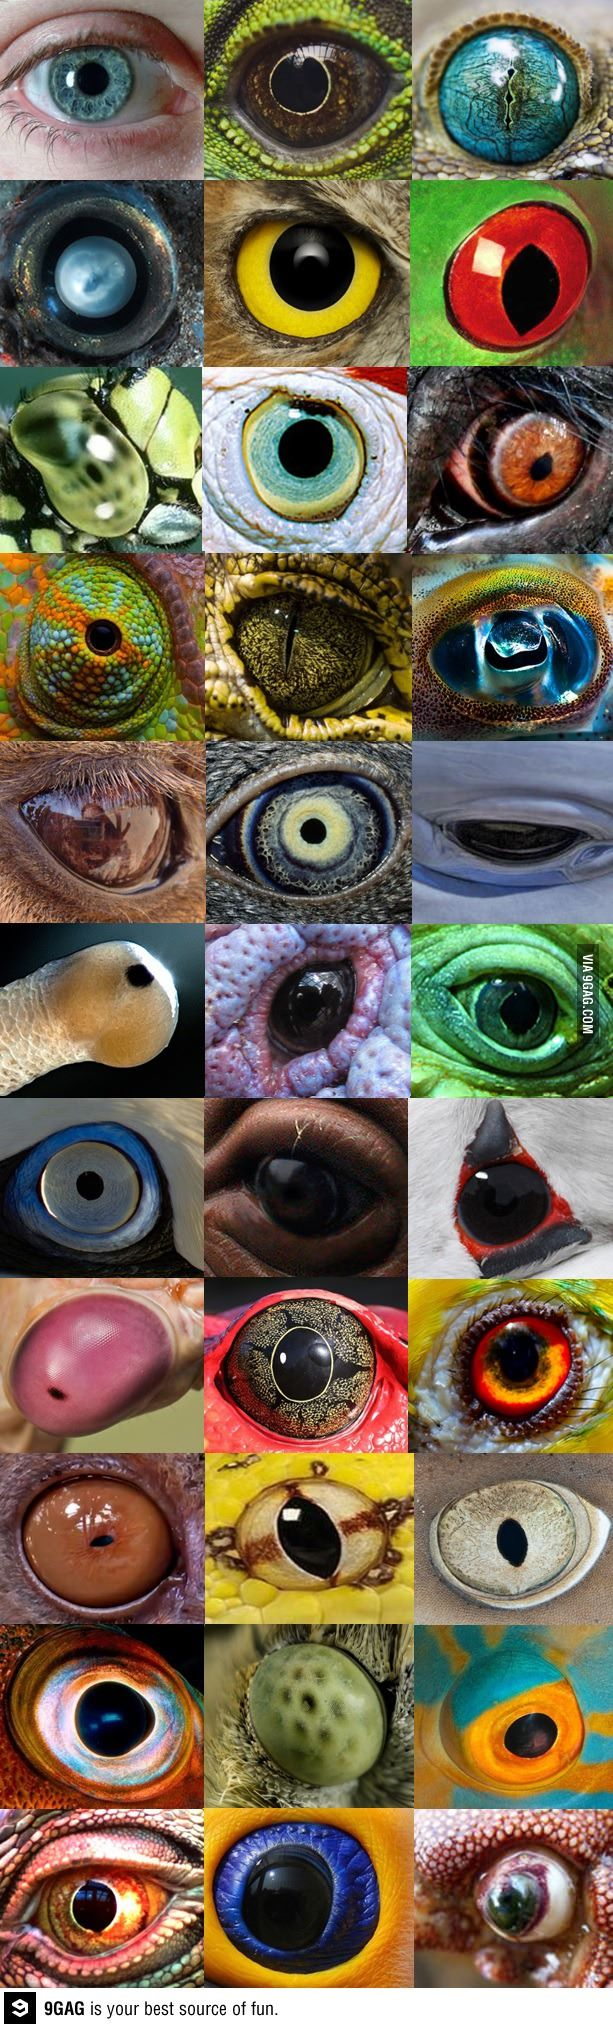 Its cool to see all the different eyes God shows us.  None of them are alike but they are all beautiful in their own ways.